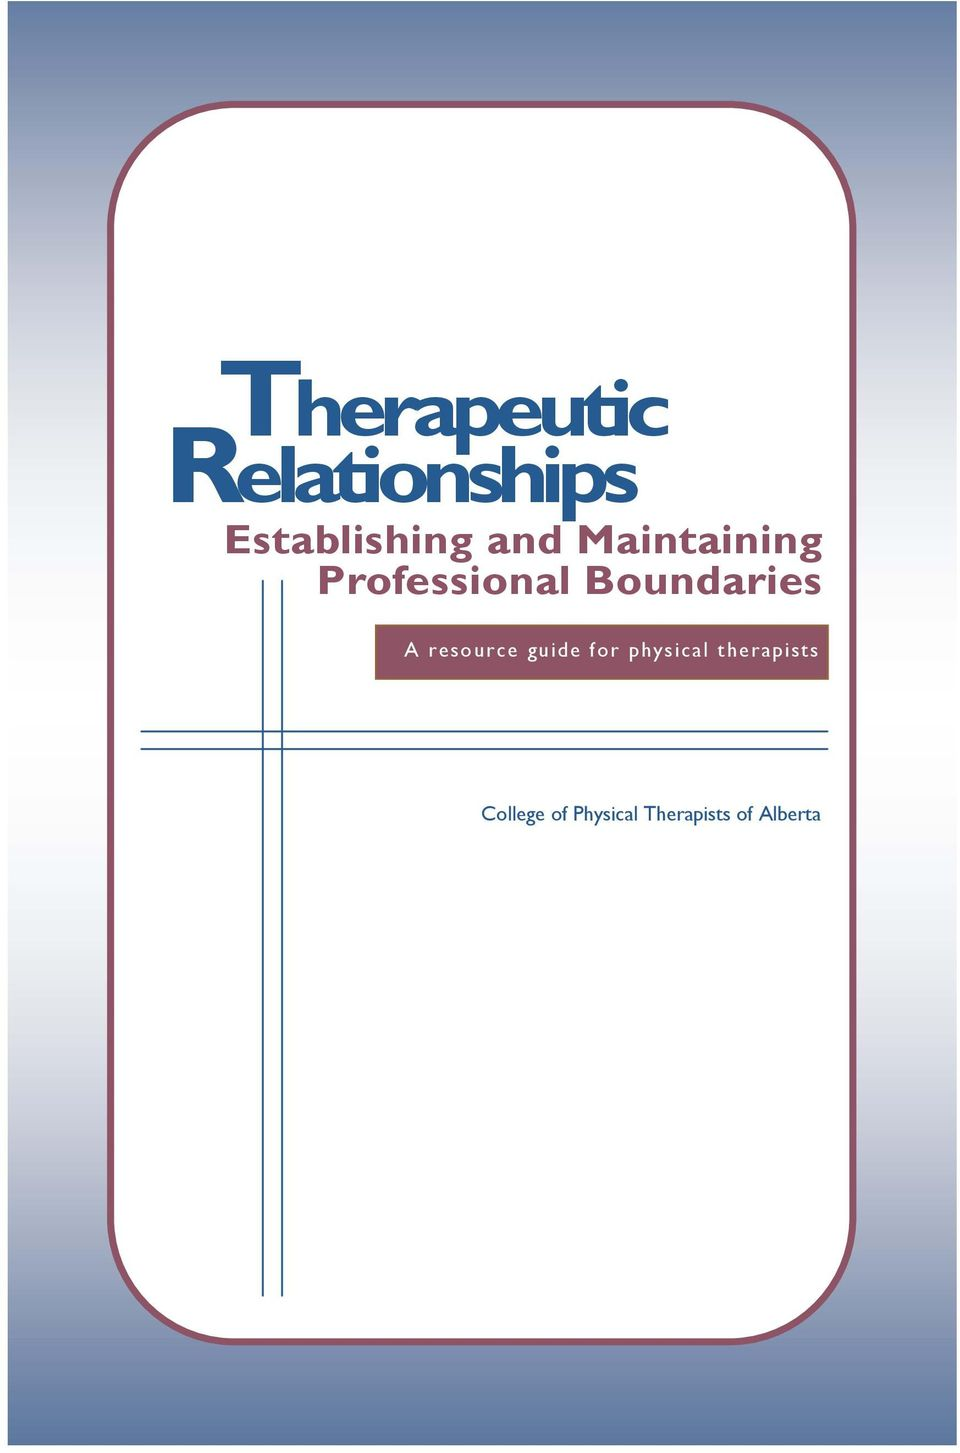 A resource guide for physical therapists